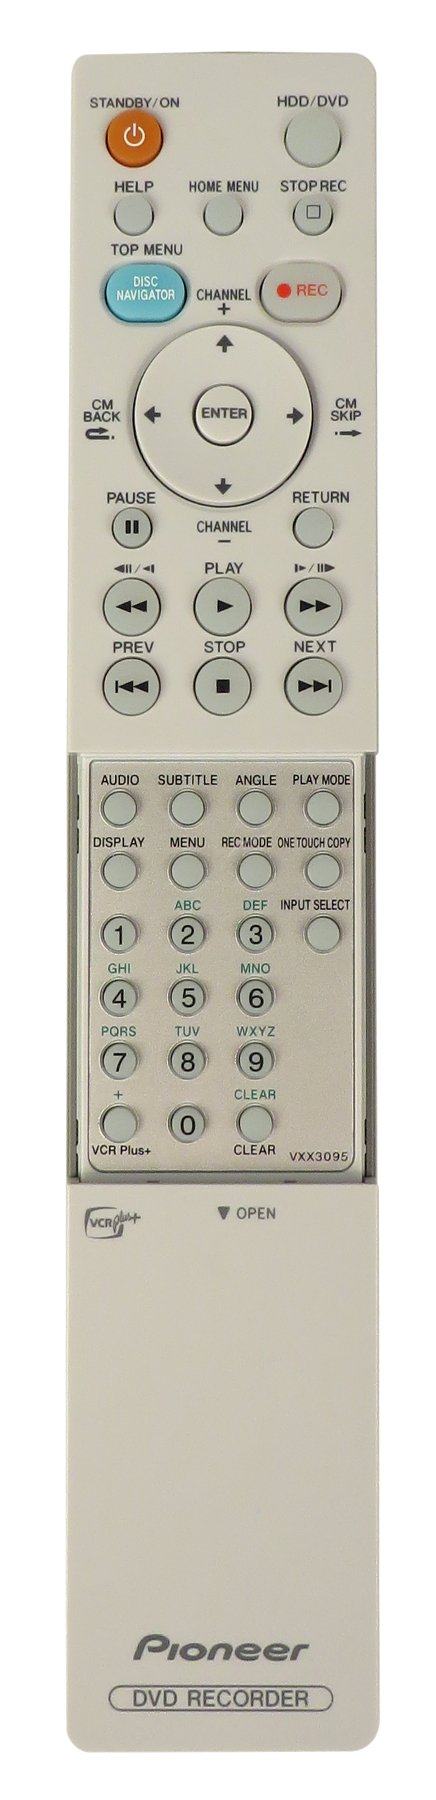 Remote Control for DVR540HS